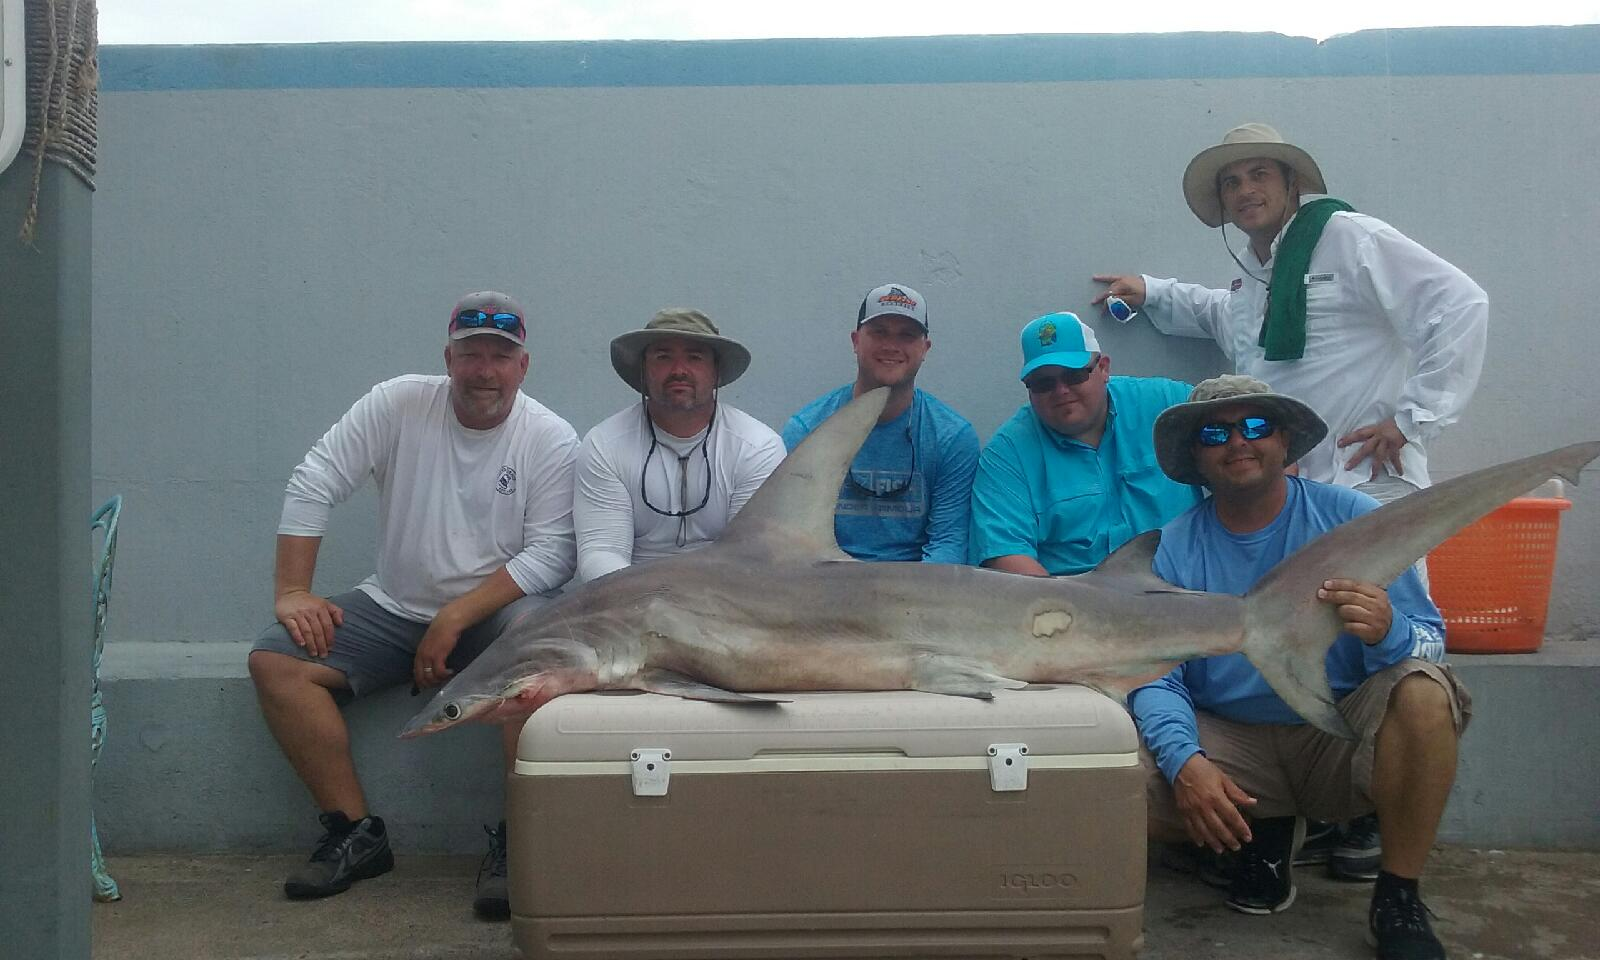 Galveston fishing report 8 12 16 galveston fishing for Galveston fishing charter